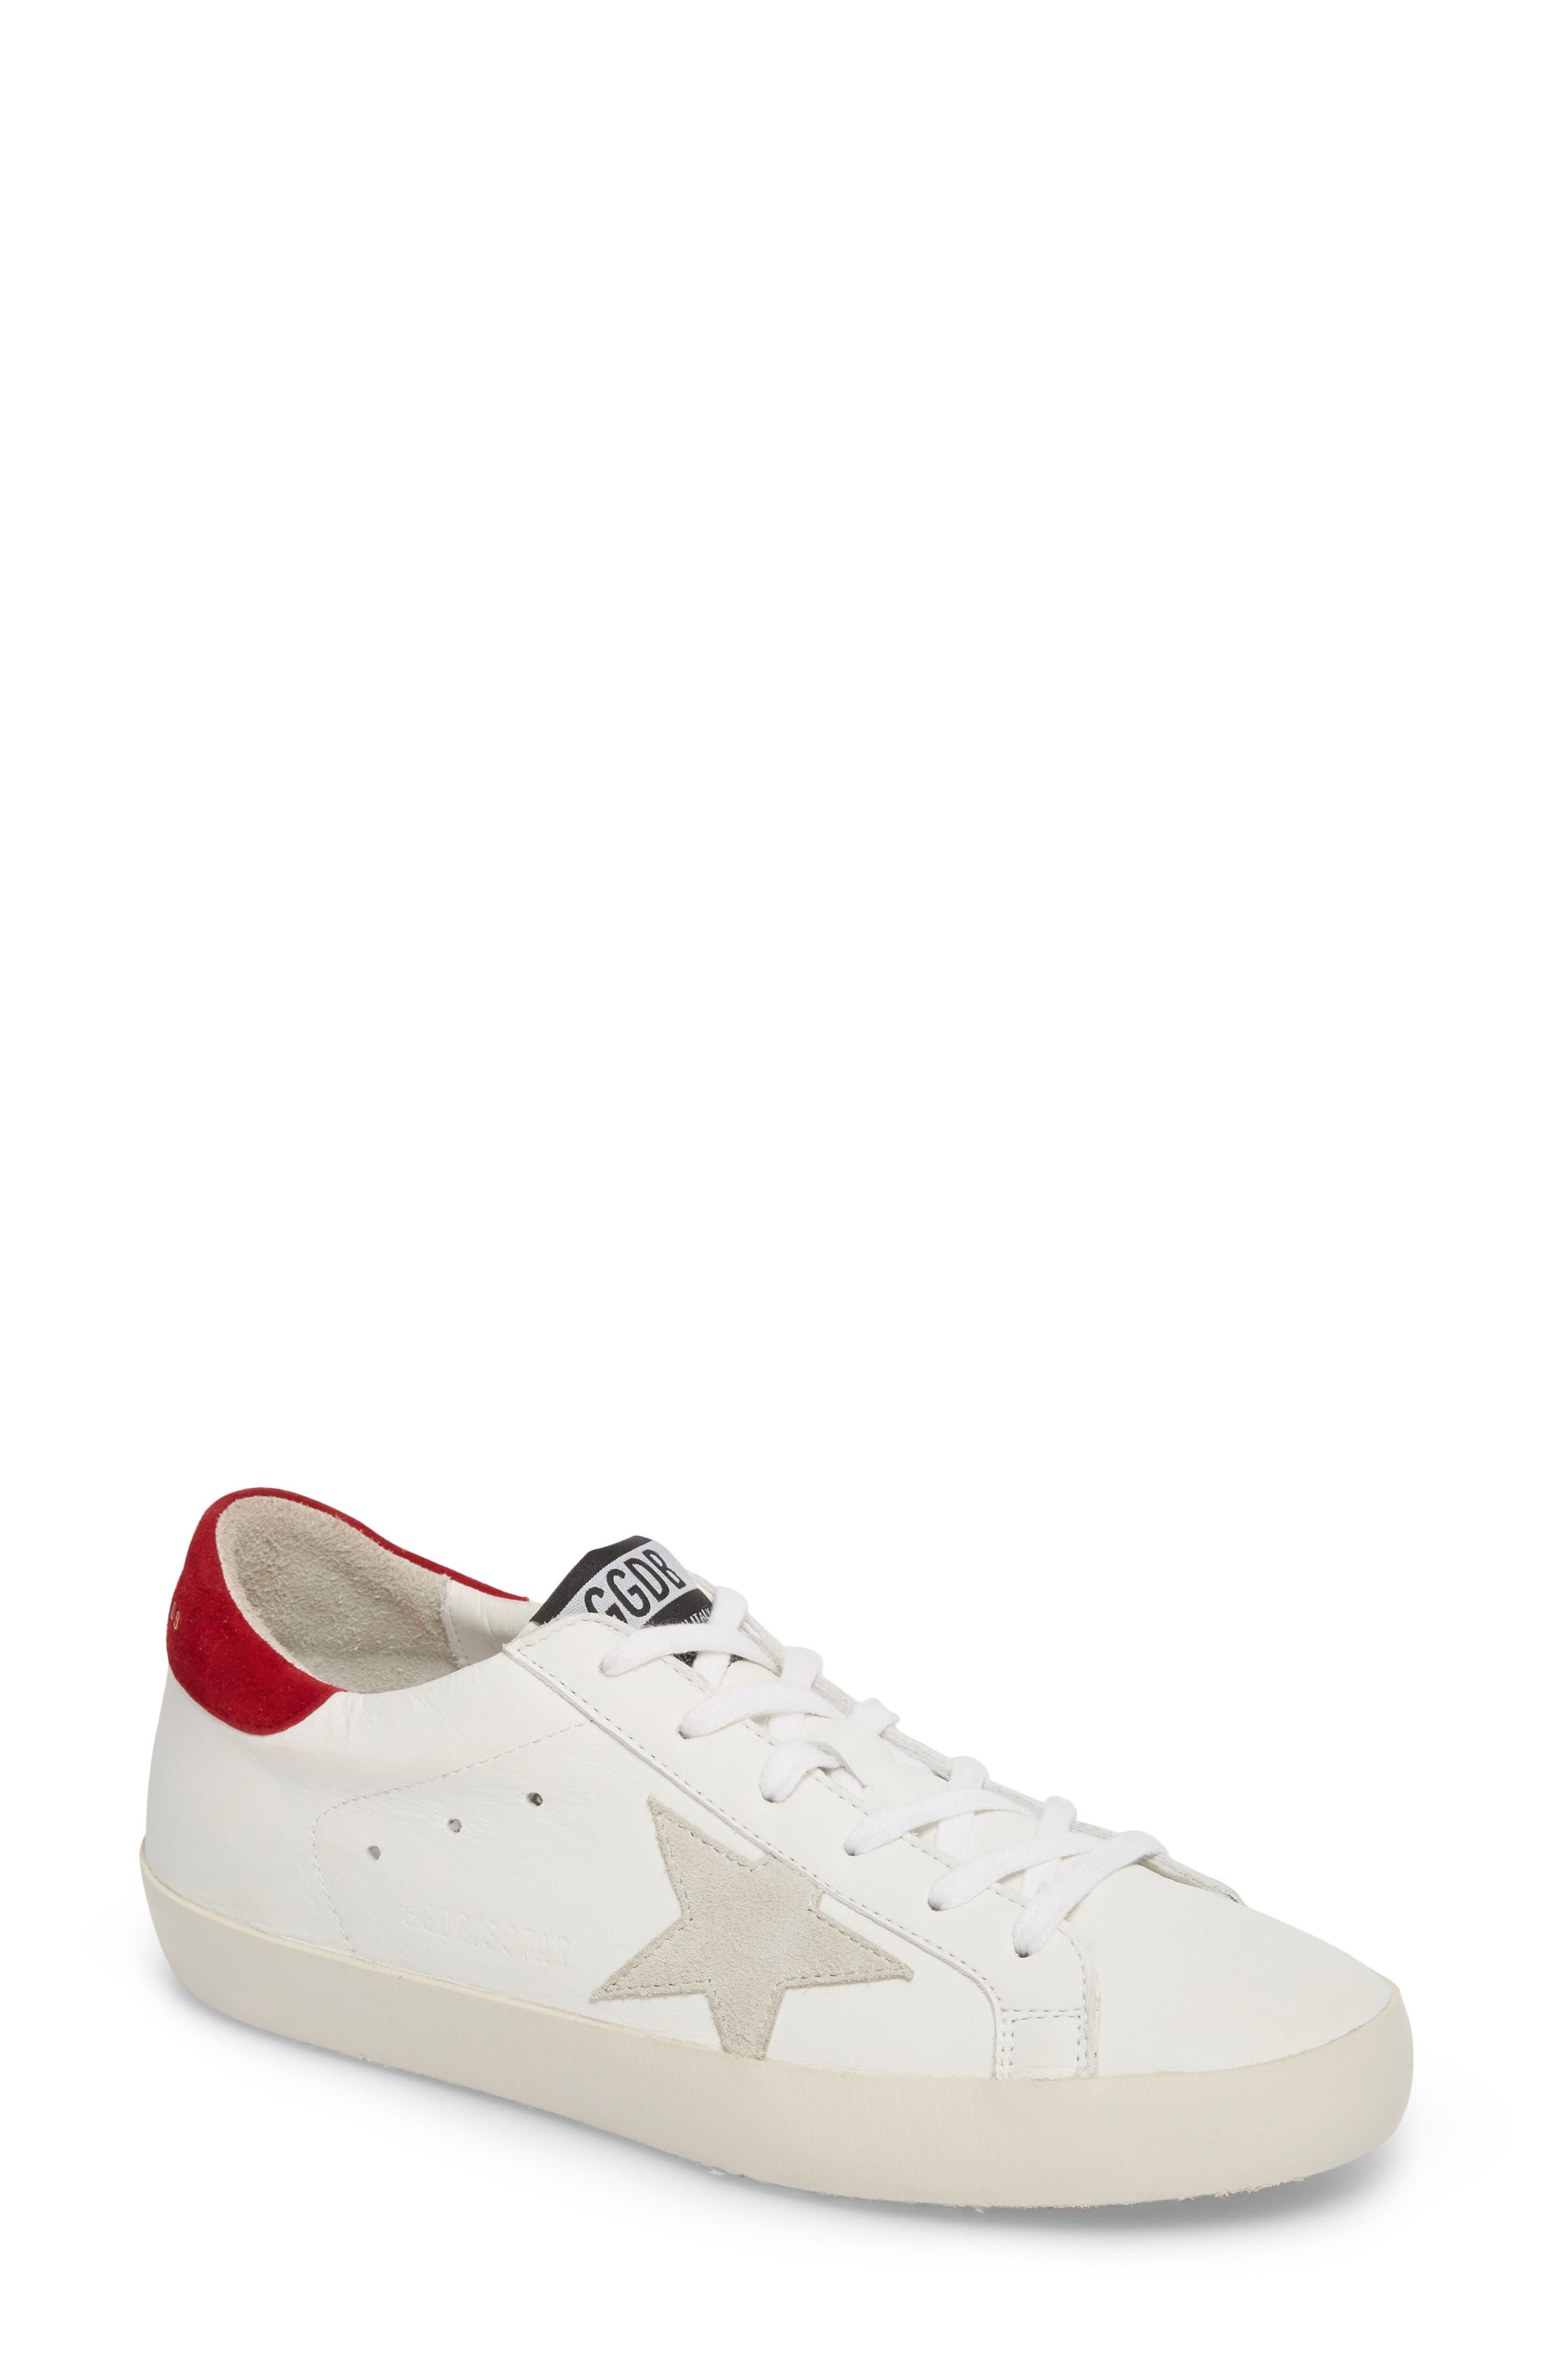 Superstar Low Top Sneaker,                             Main thumbnail 1, color,                             White/ Bordeaux